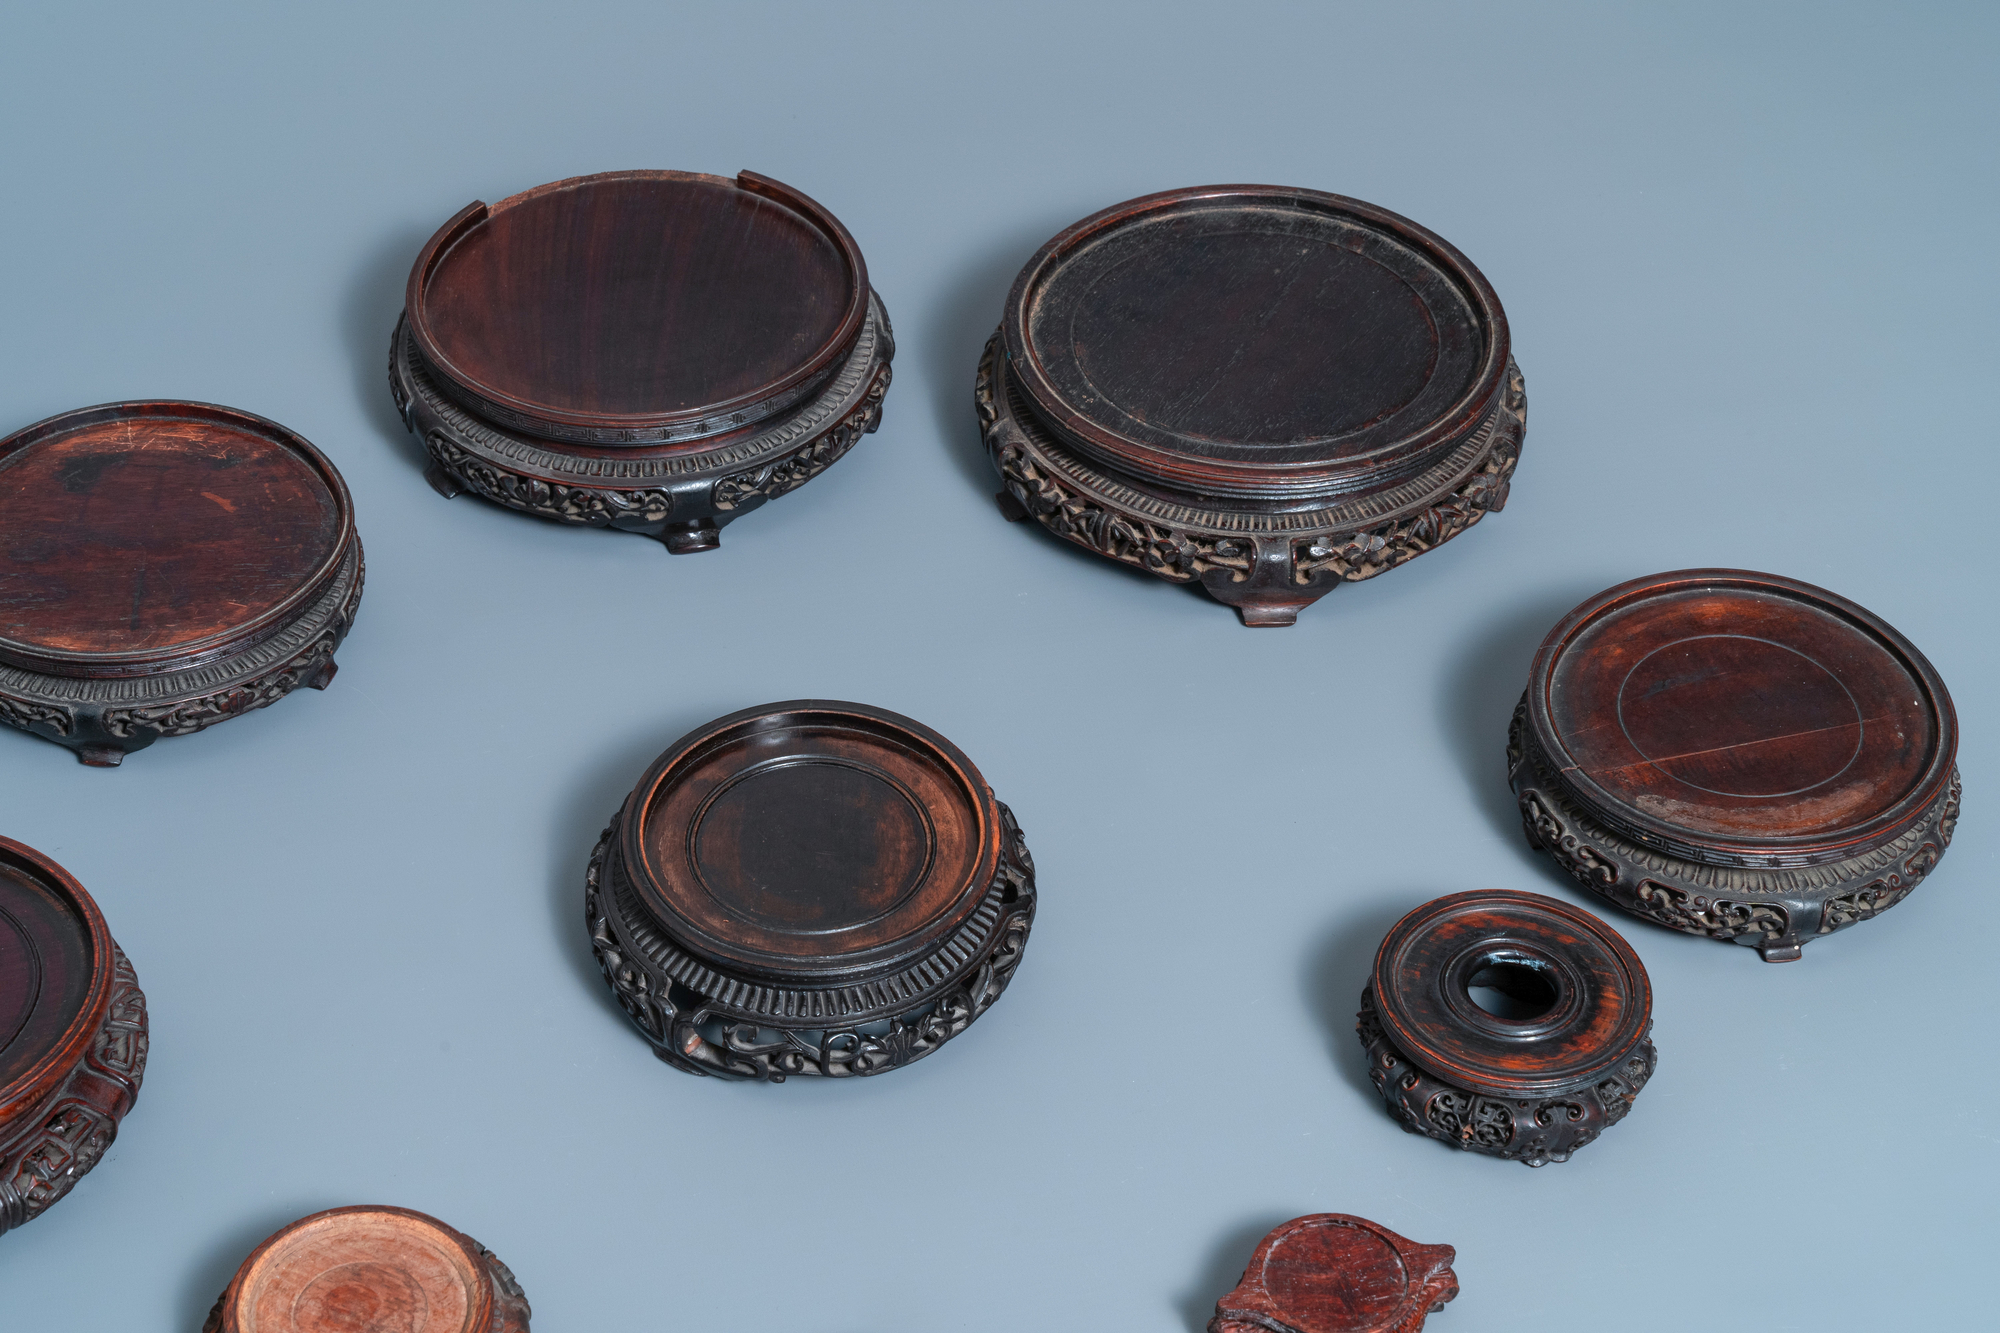 Ten Chinese reticulated carved wooden stands, 19/20th C. - Image 2 of 4